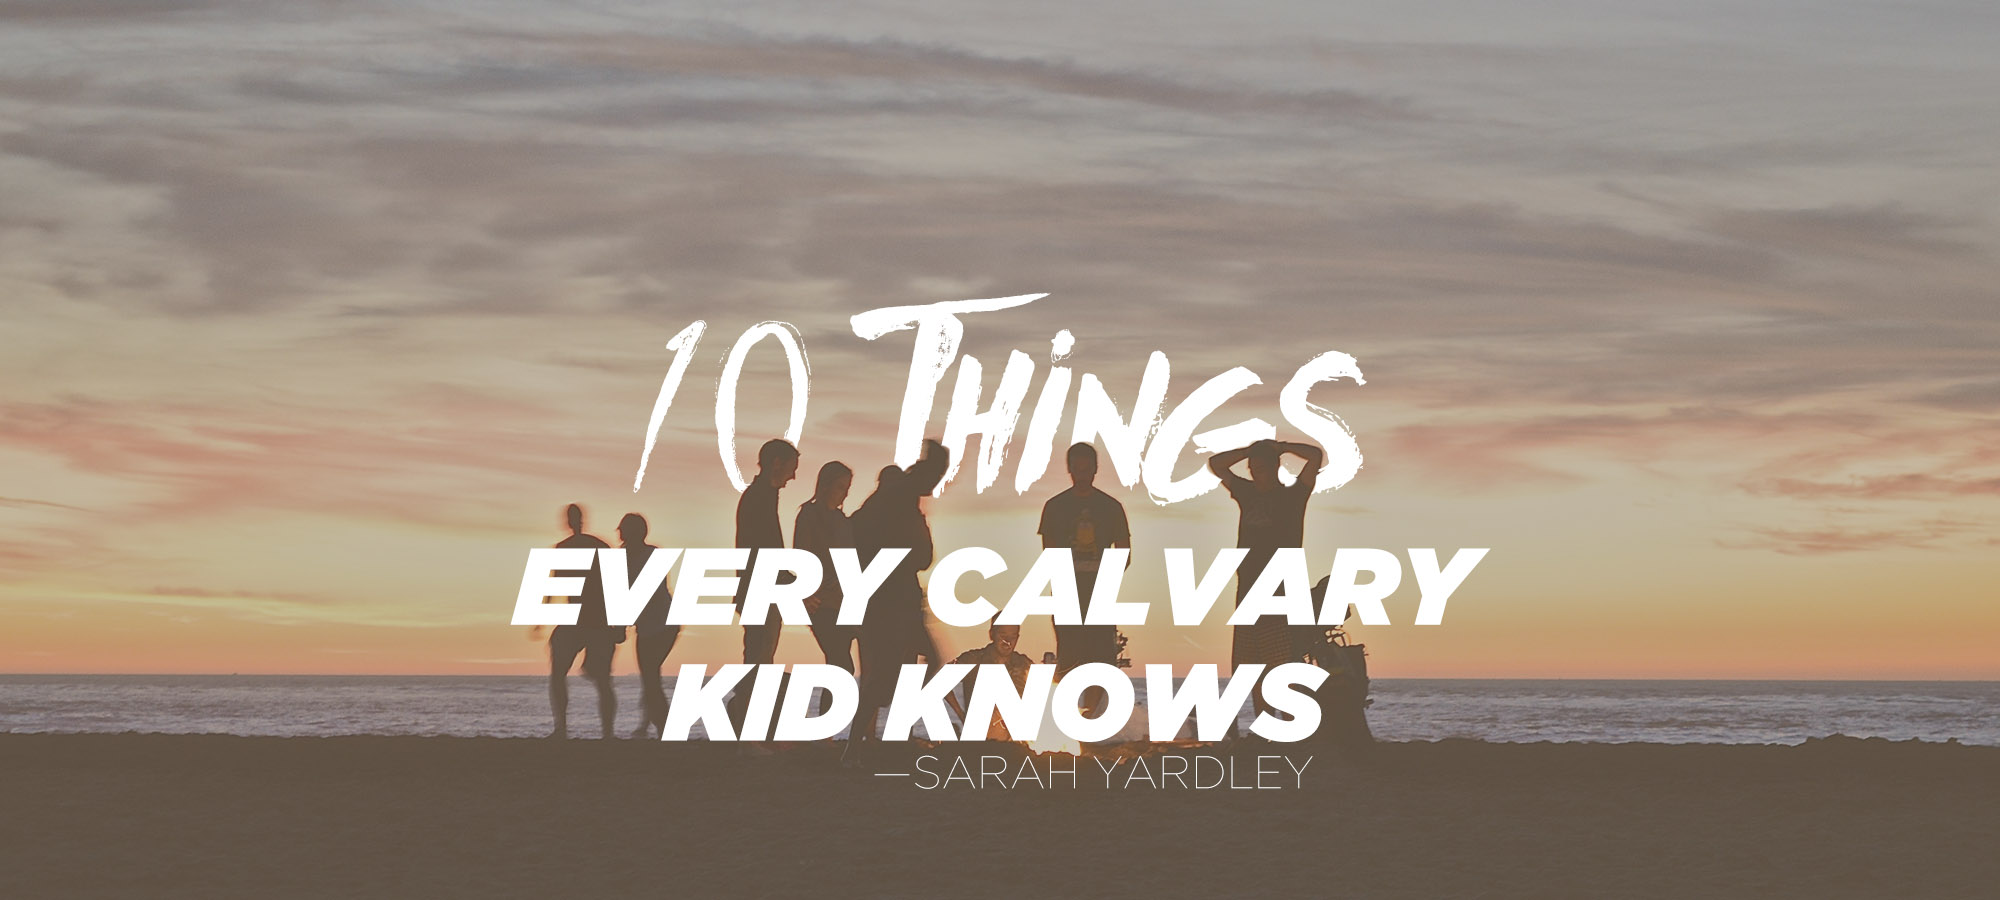 Ten Things Every Calvary Kid Knows